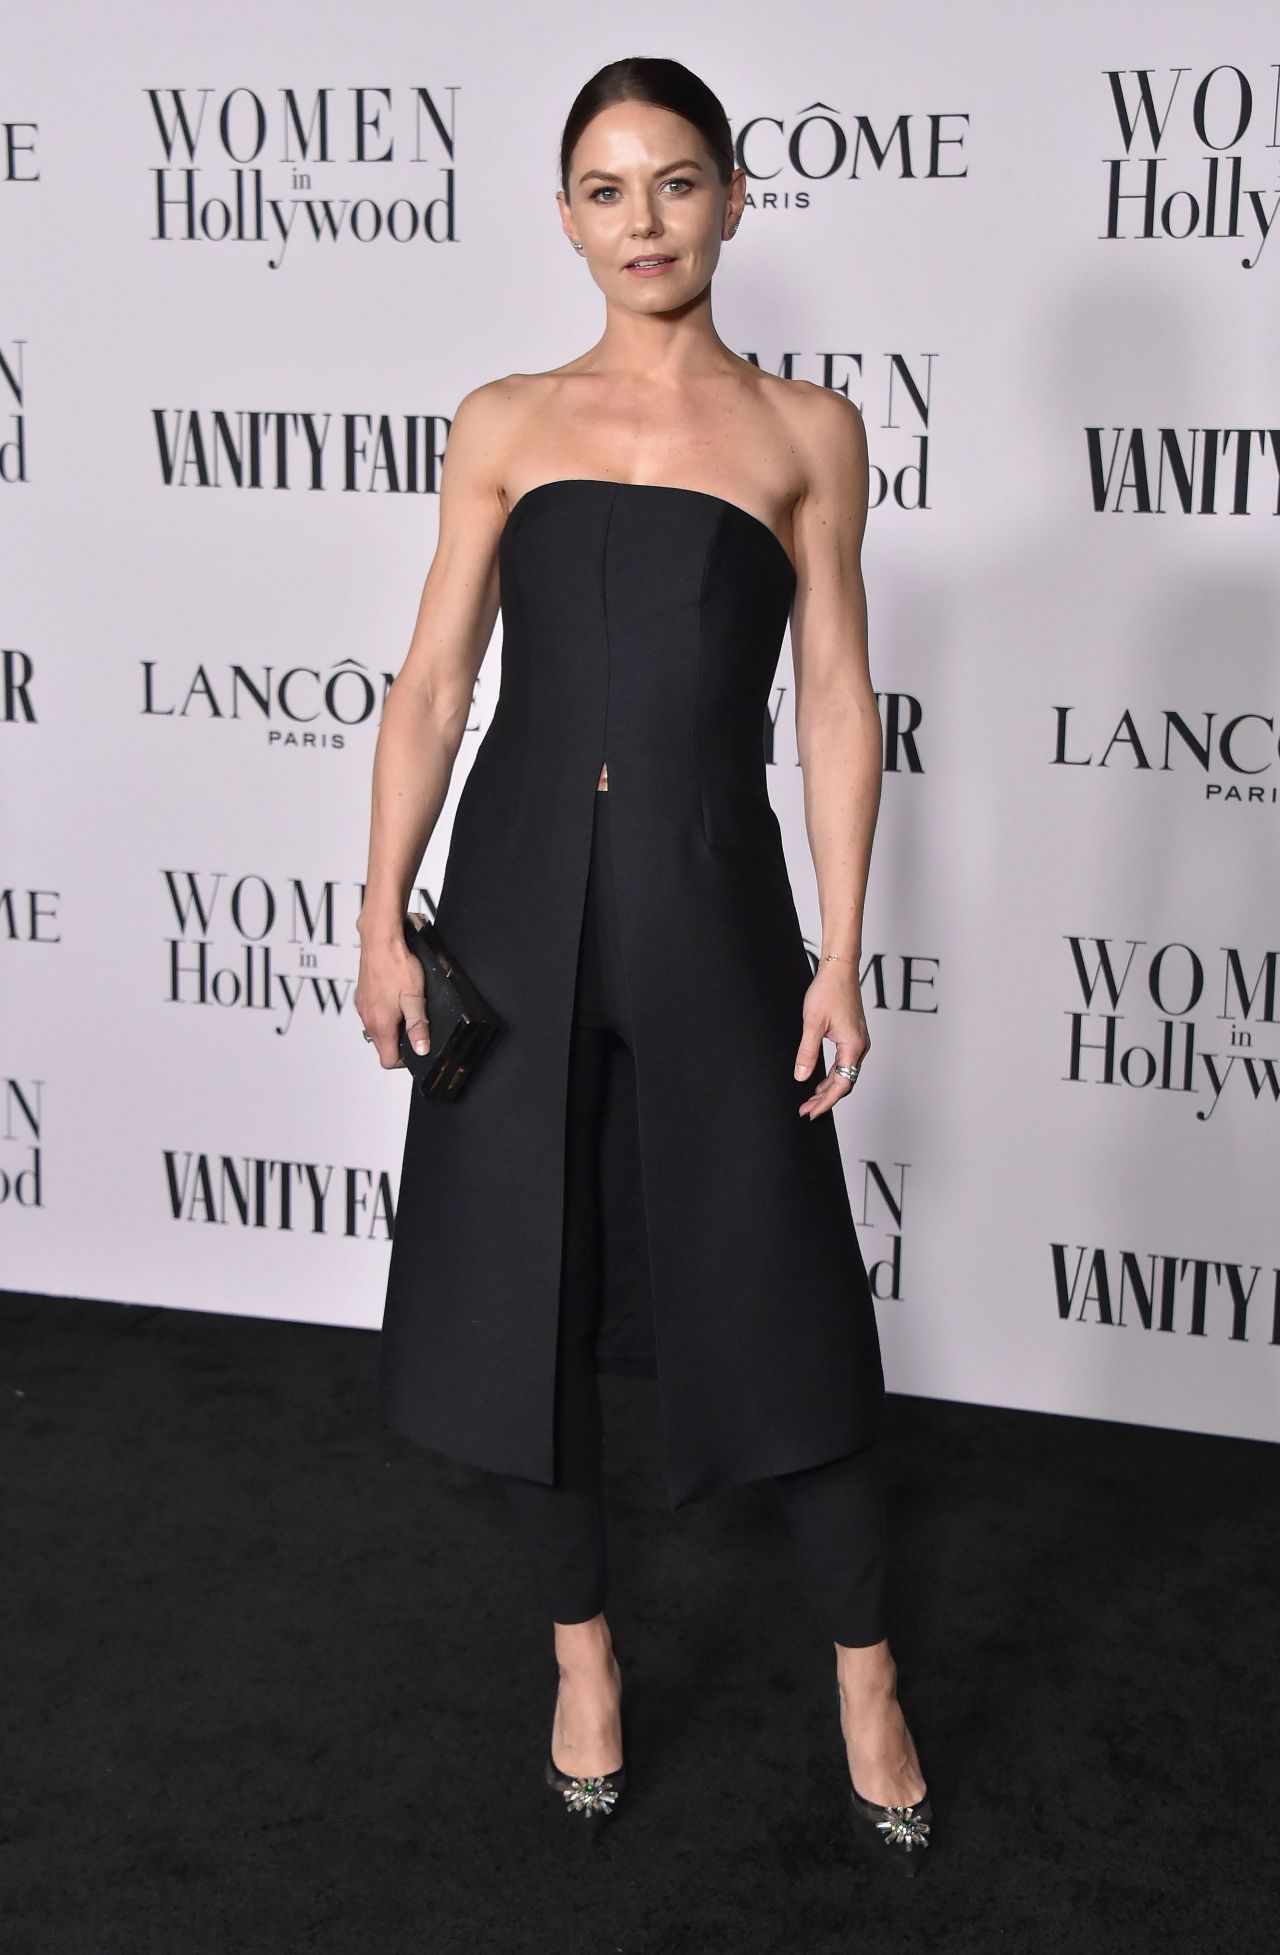 jennifer-morrison-in-c-meo-collective-vanity-fair-and-lancome-women-in-hollywood-celebration